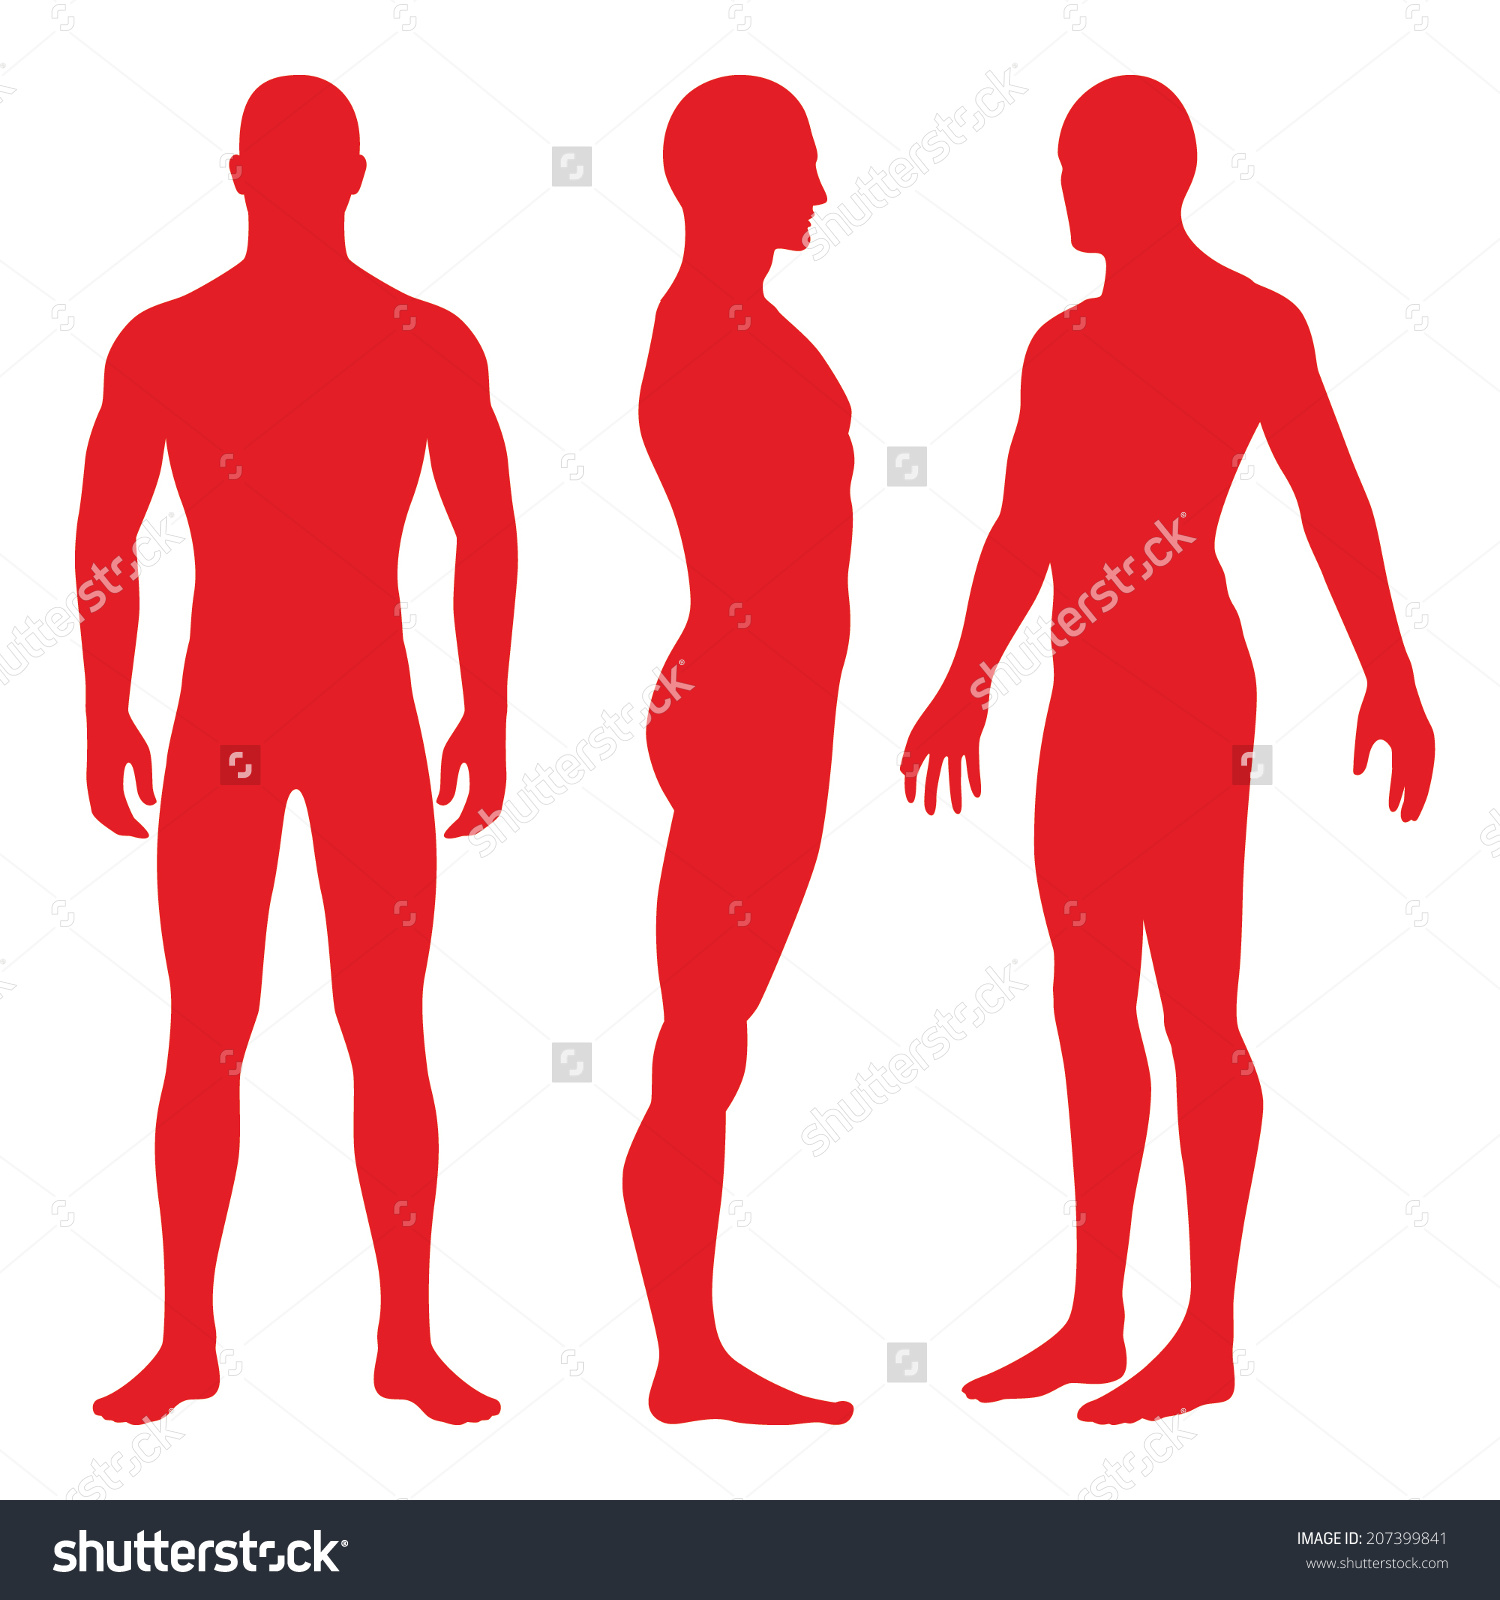 Set Silhouettes Standing Naked Man Woman Stock Vector 207399841.